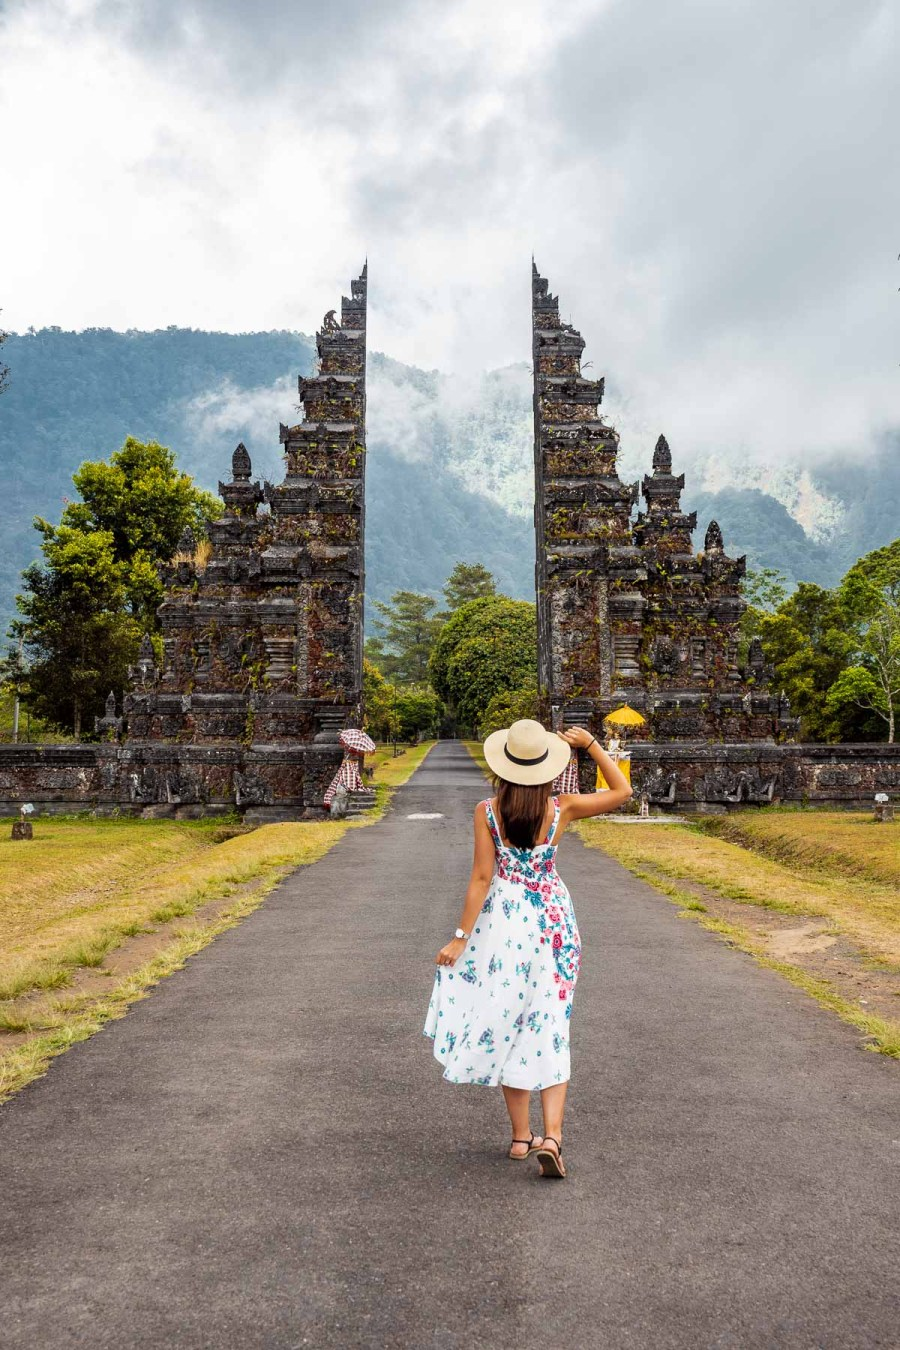 Girl in a floral dress standing in front of the Handara Gate in Bali